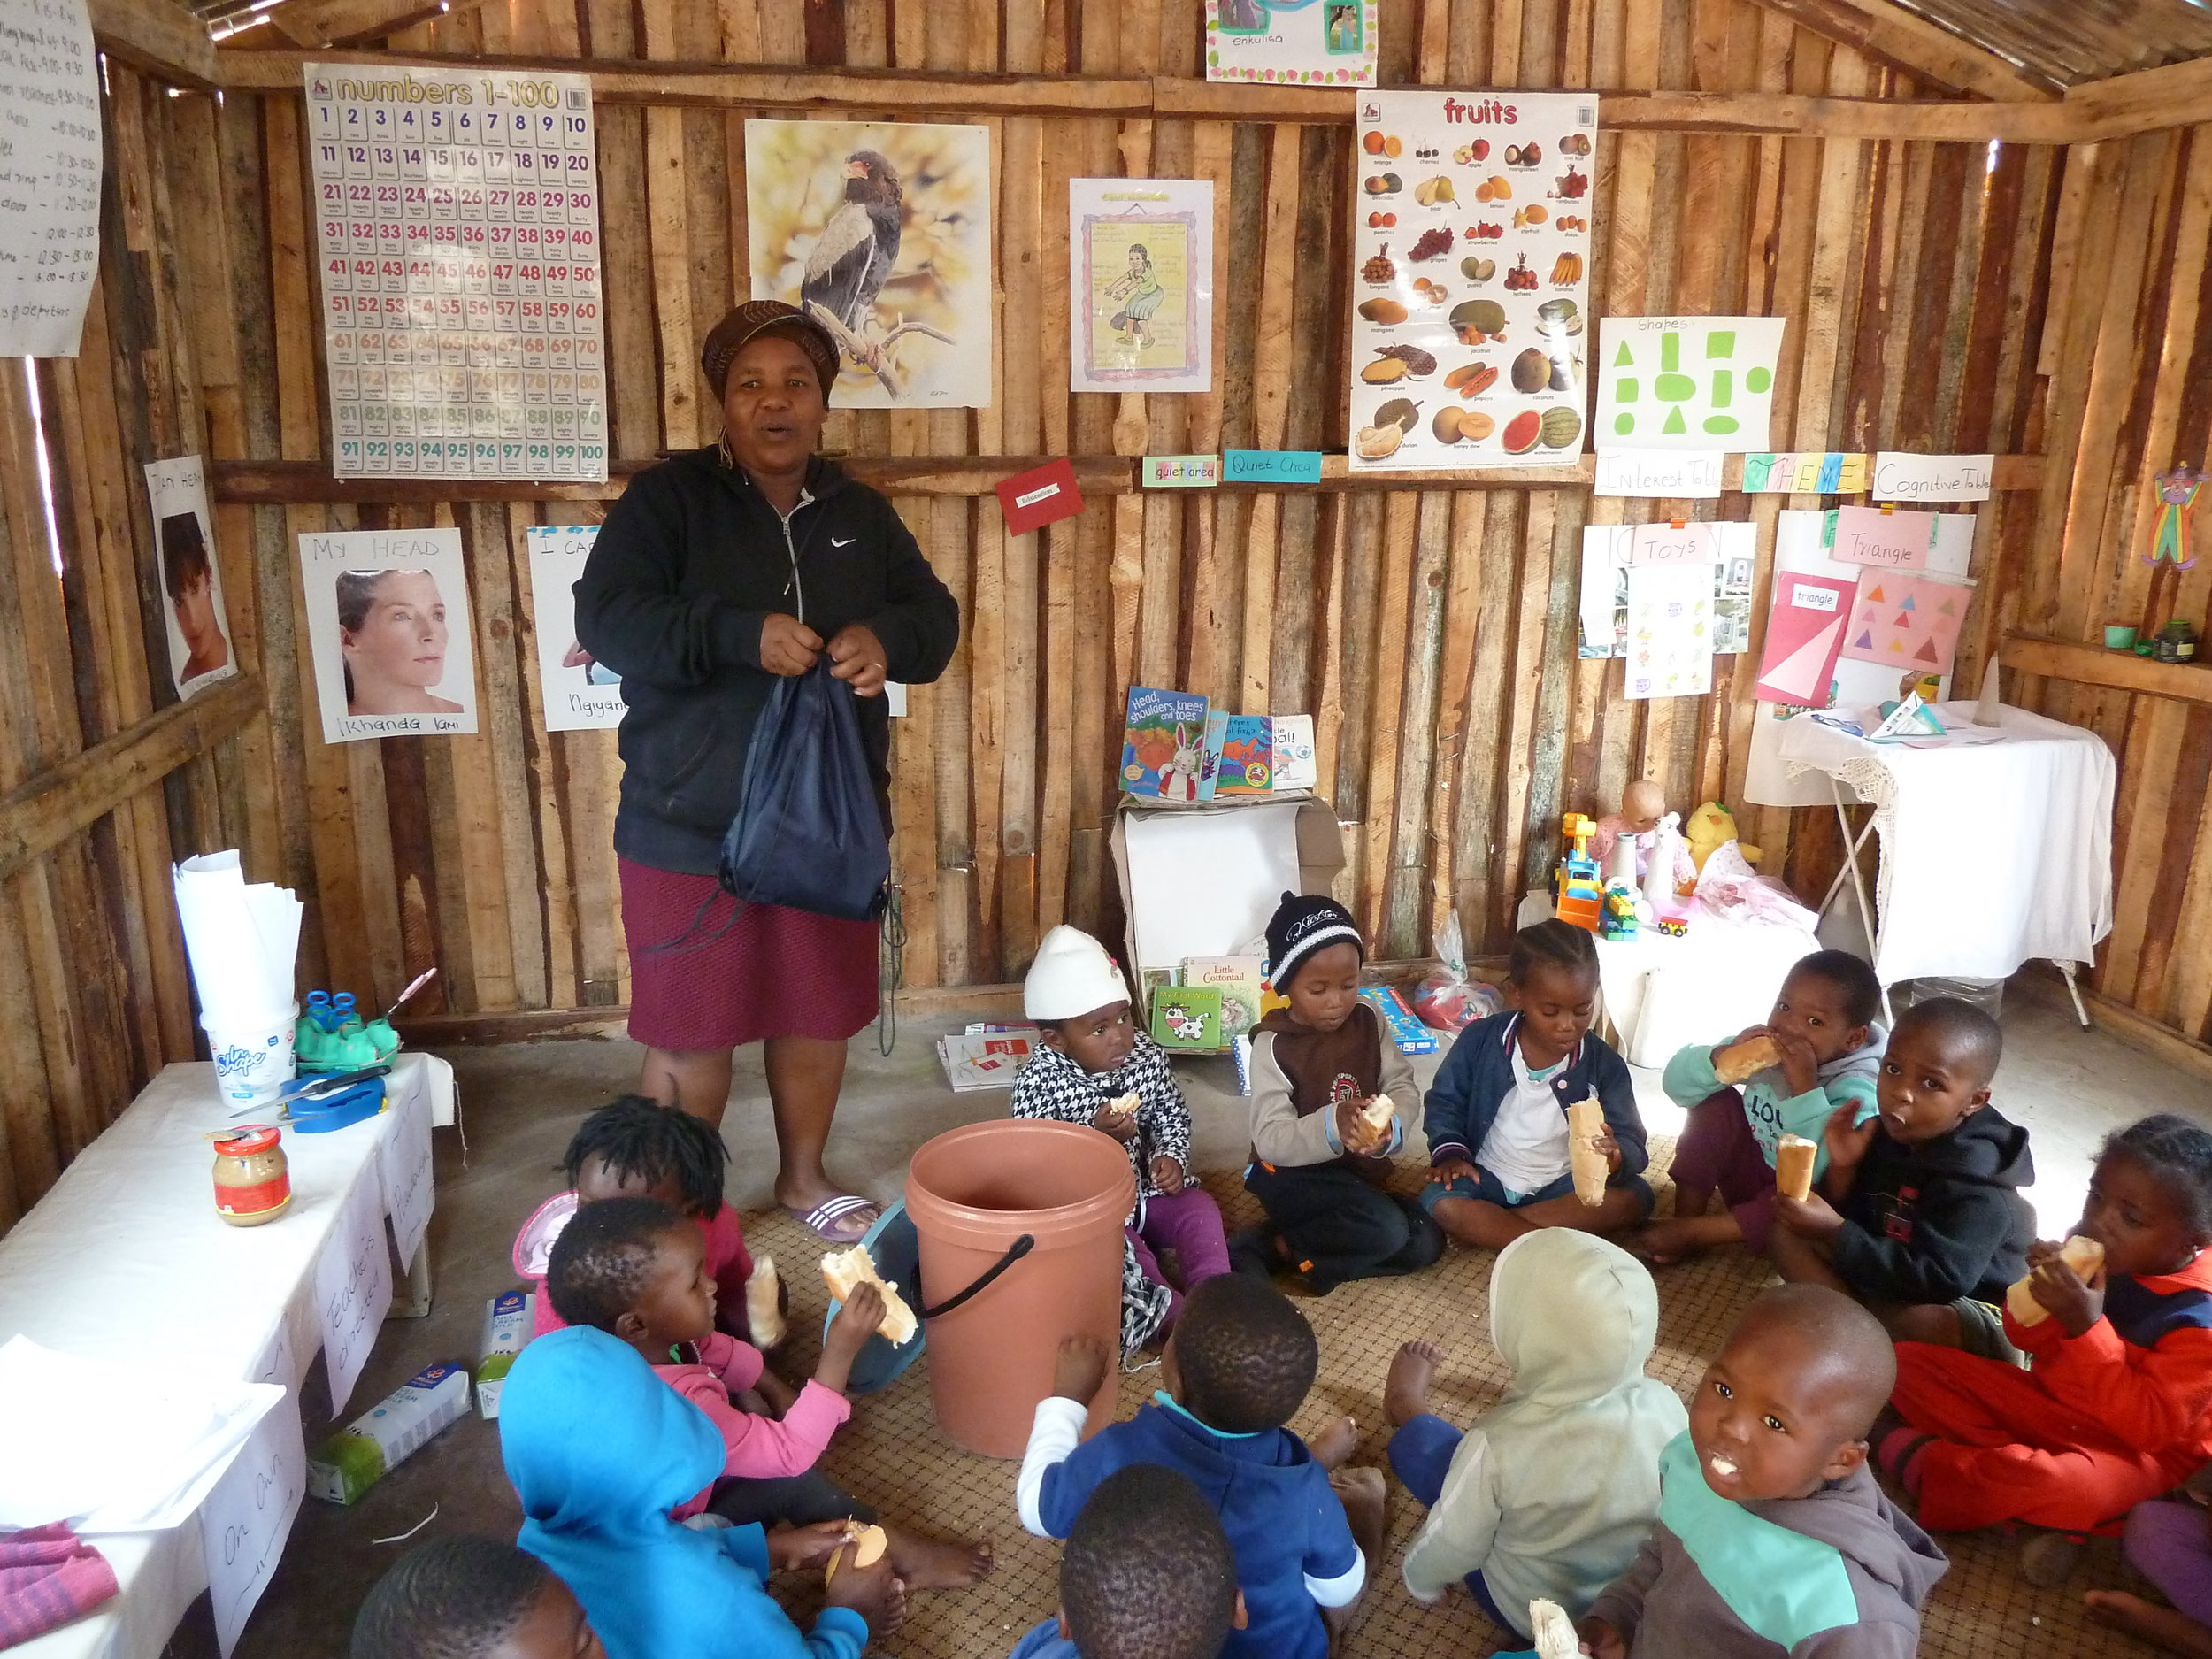 One of the Phakamisa pre-school classes in a local village